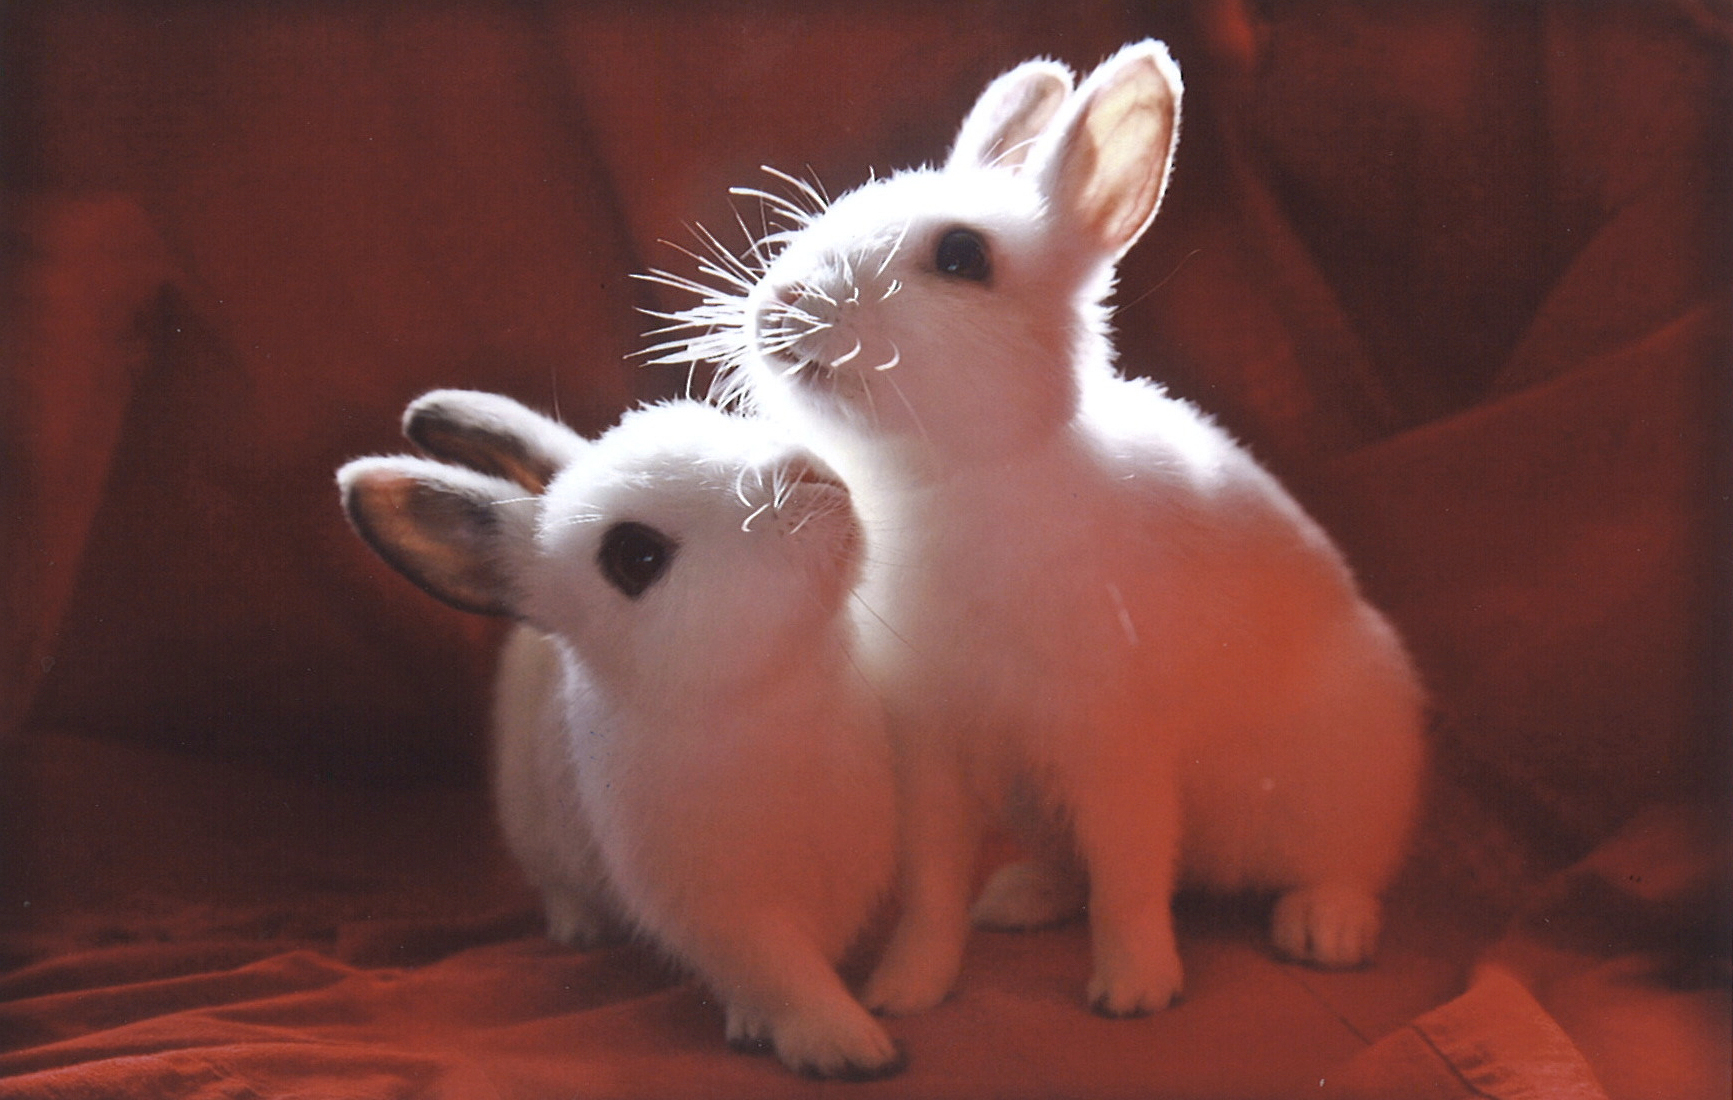 Photograph of light shining on two white rabbits surrounded by red fabric.